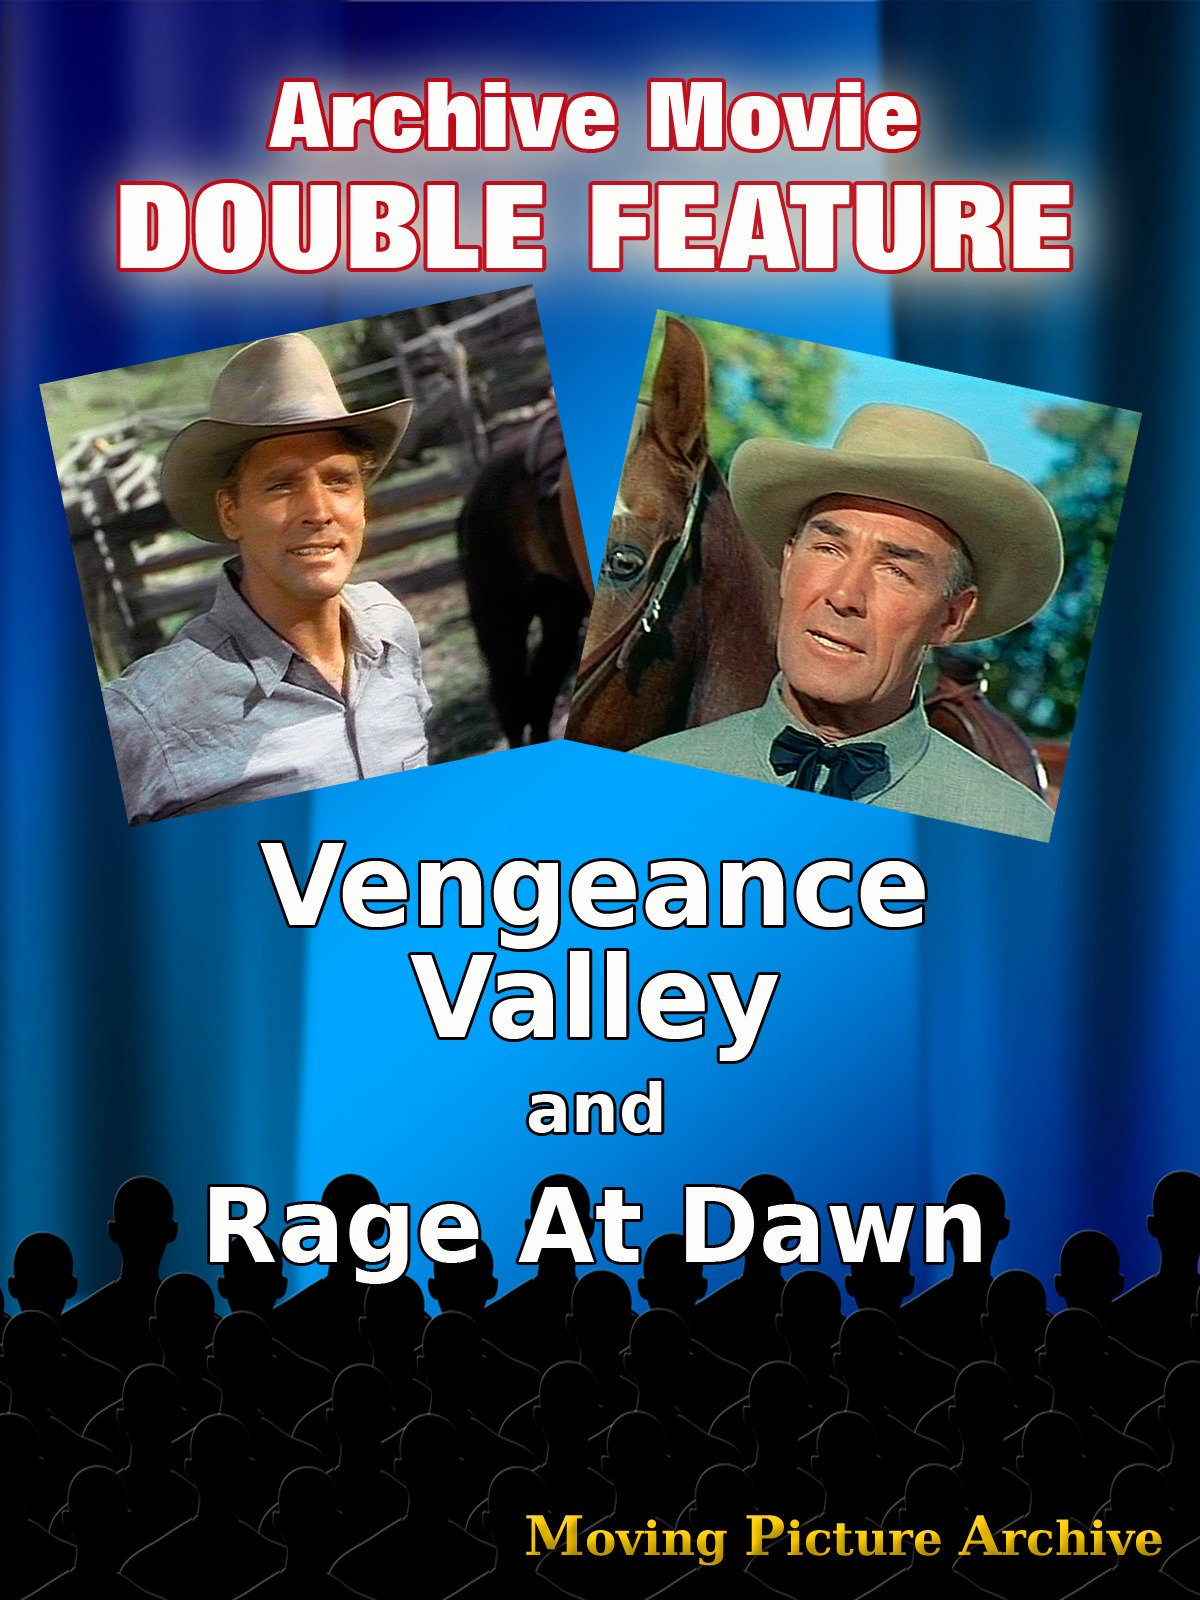 Archive Movie Double Feature